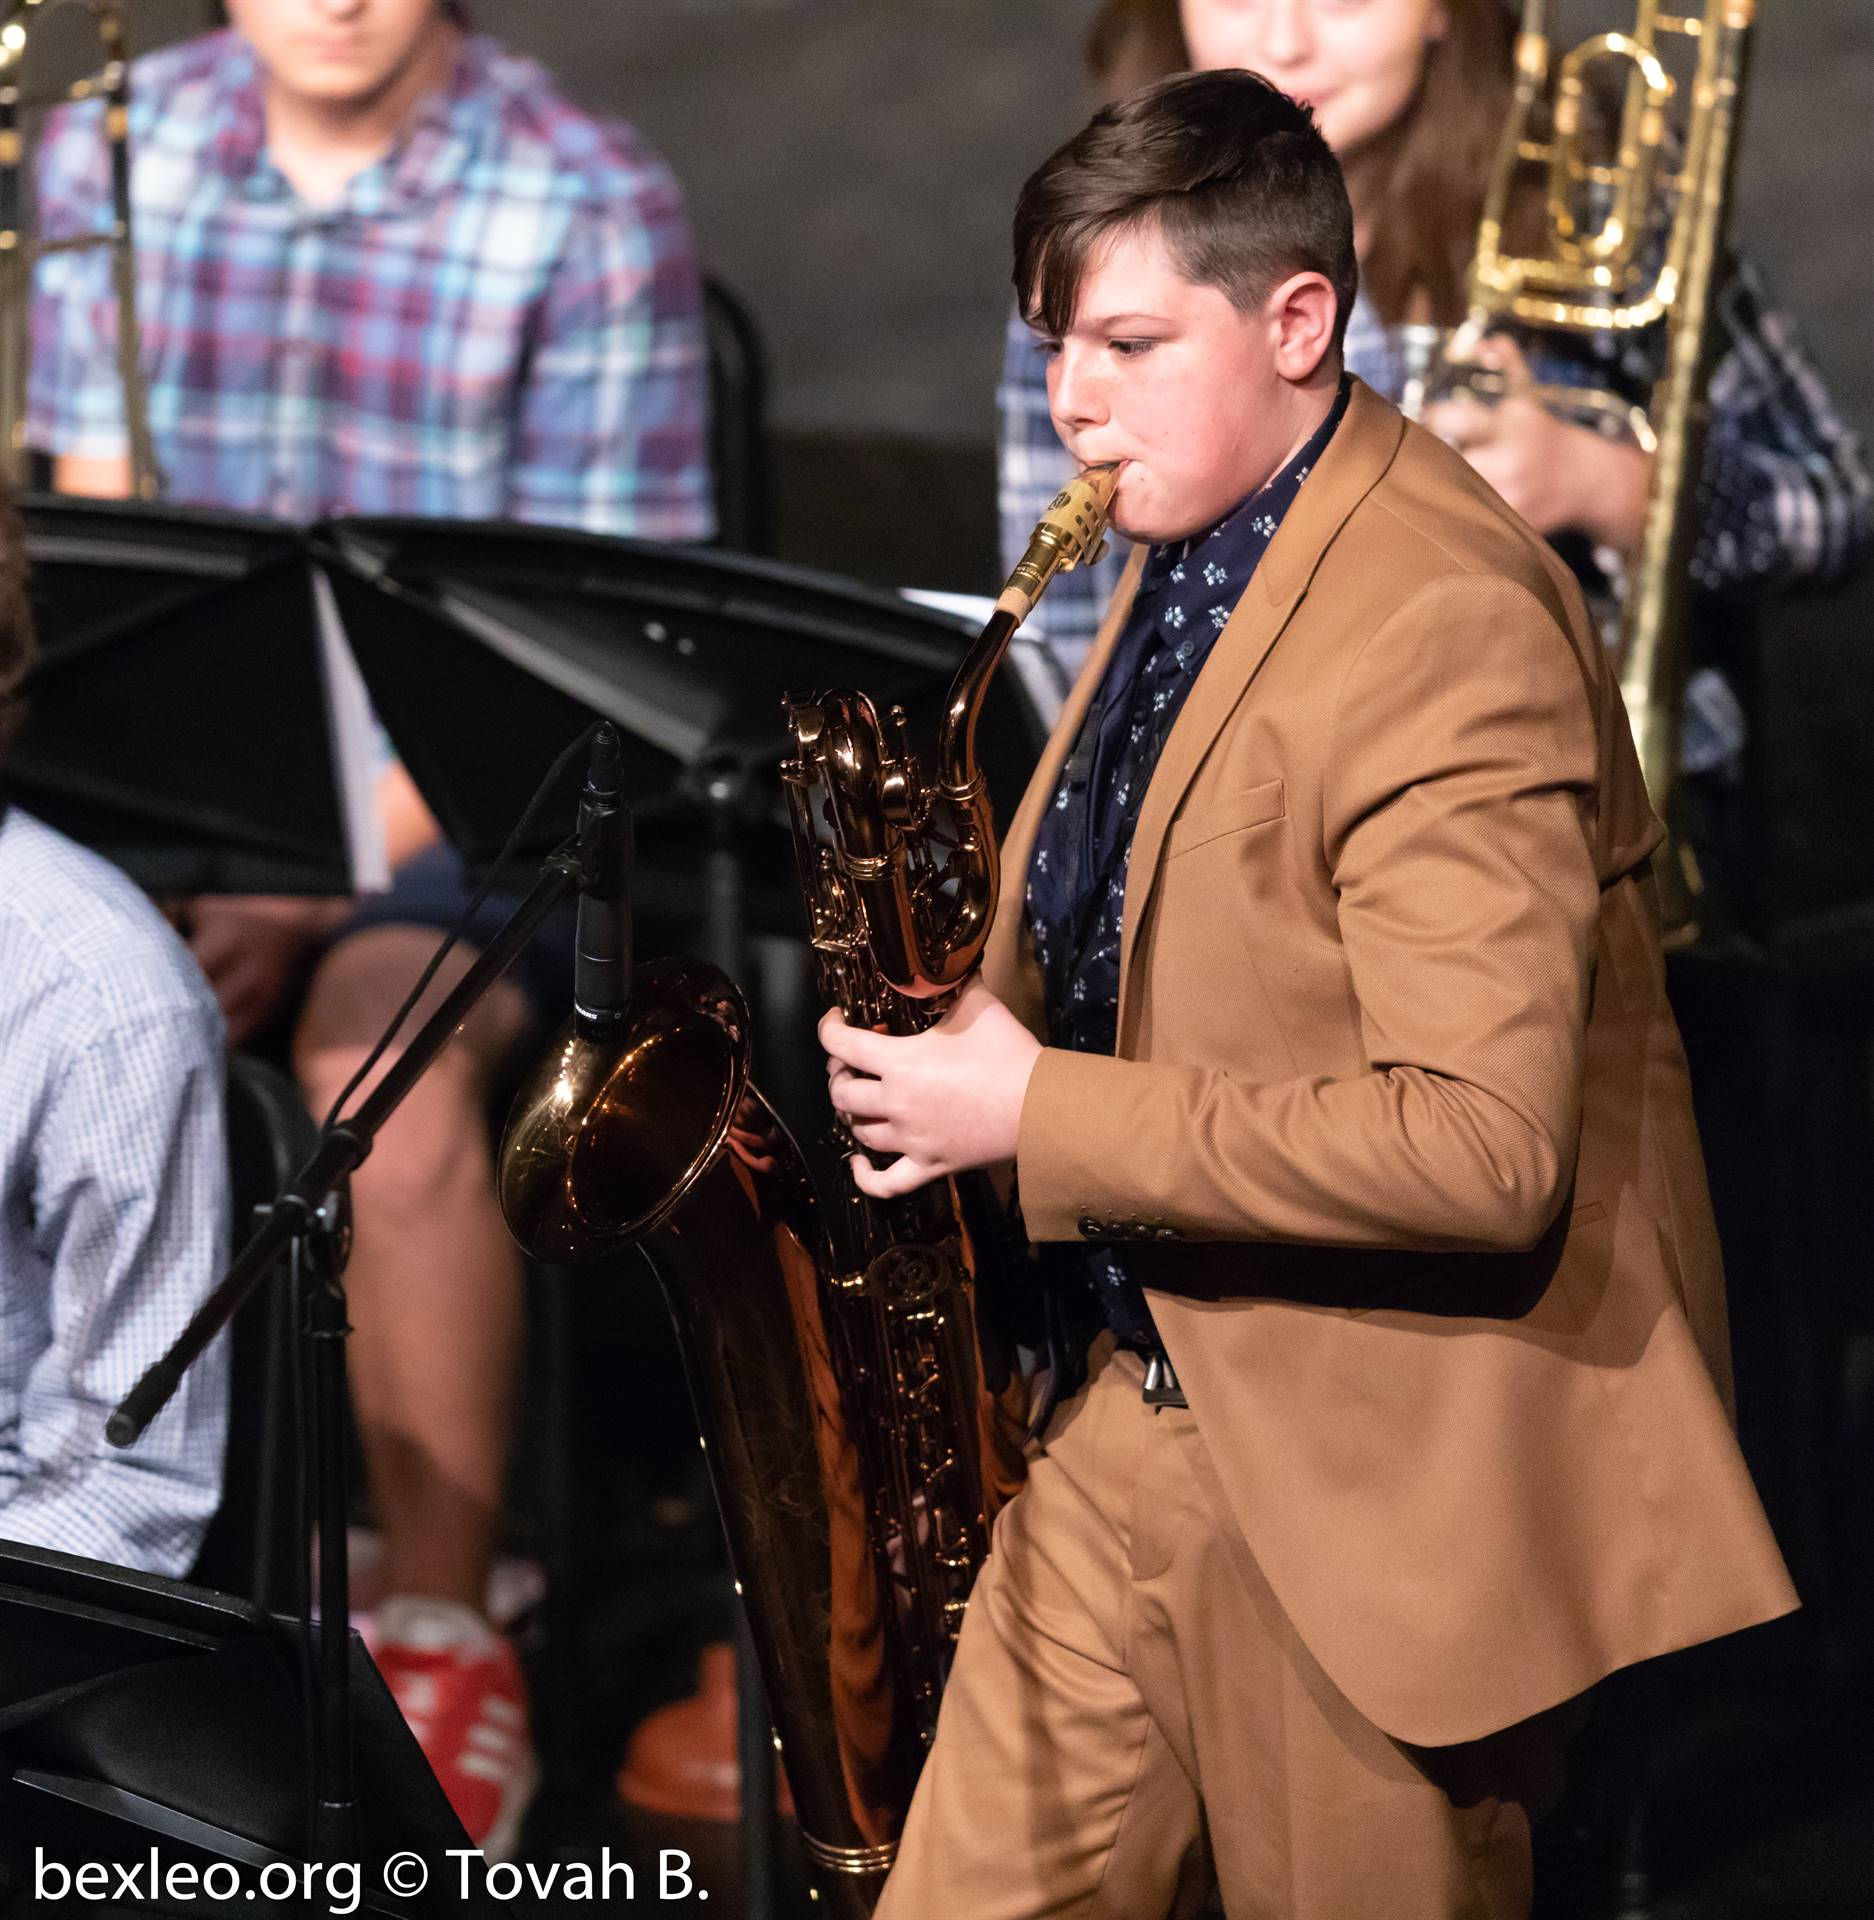 Sax player performs in the Jazz Band Fall Concert